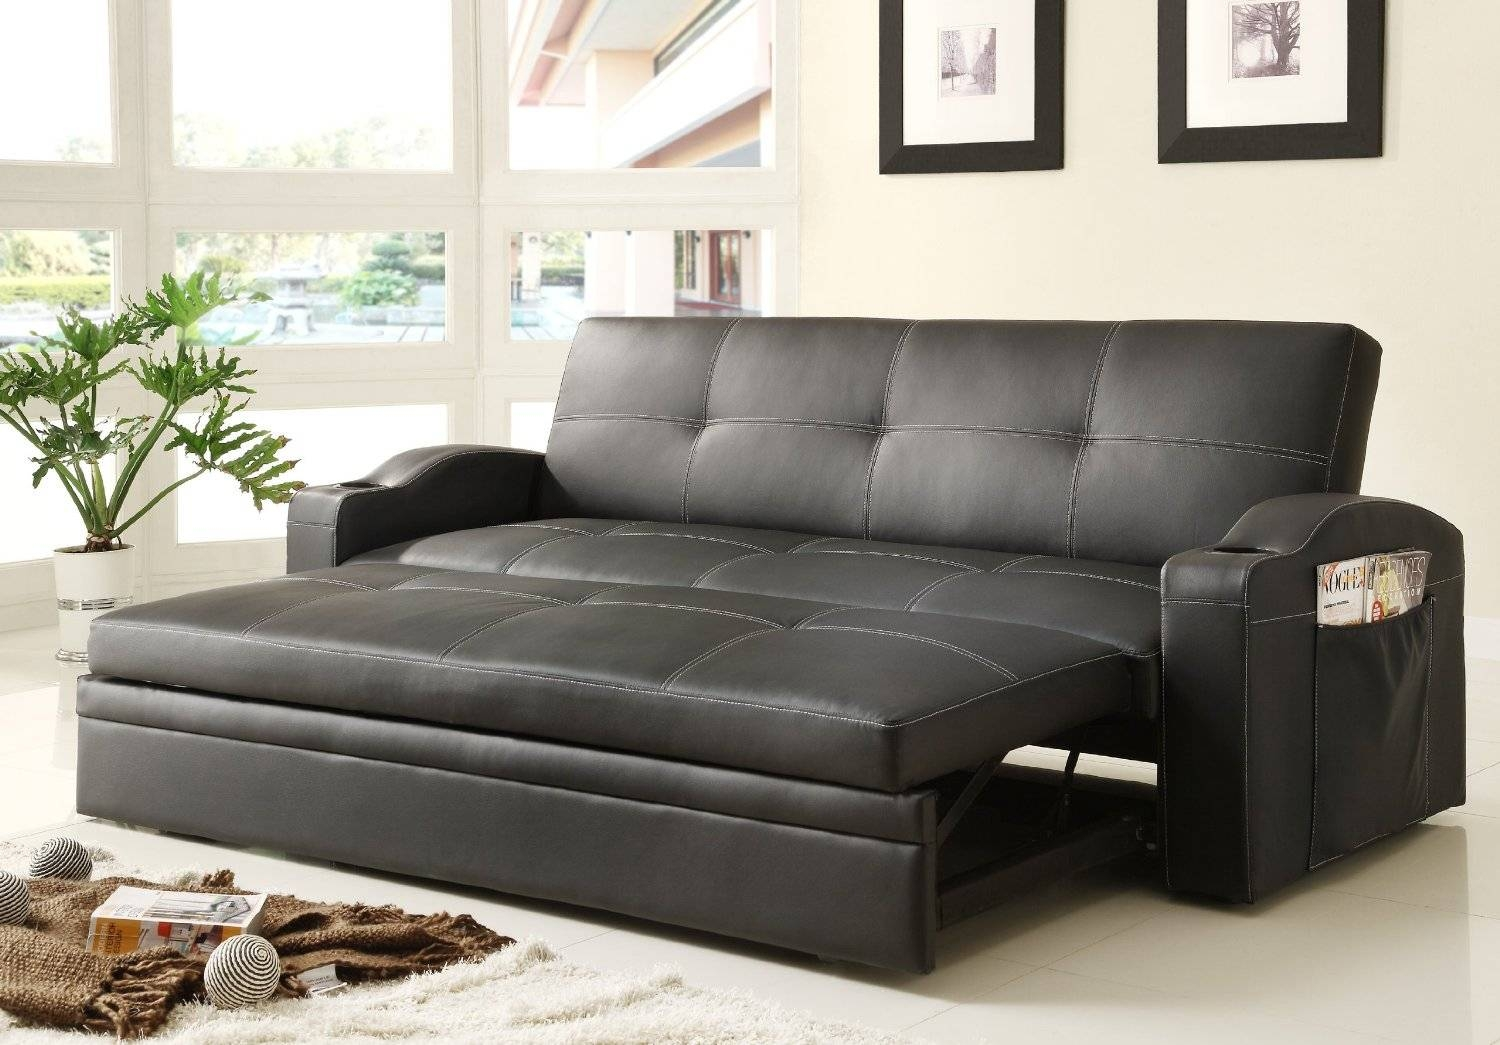 Small Black Leather Sofa Bed | Centerfieldbar within Convertible Futon Sofa Beds (Image 14 of 15)